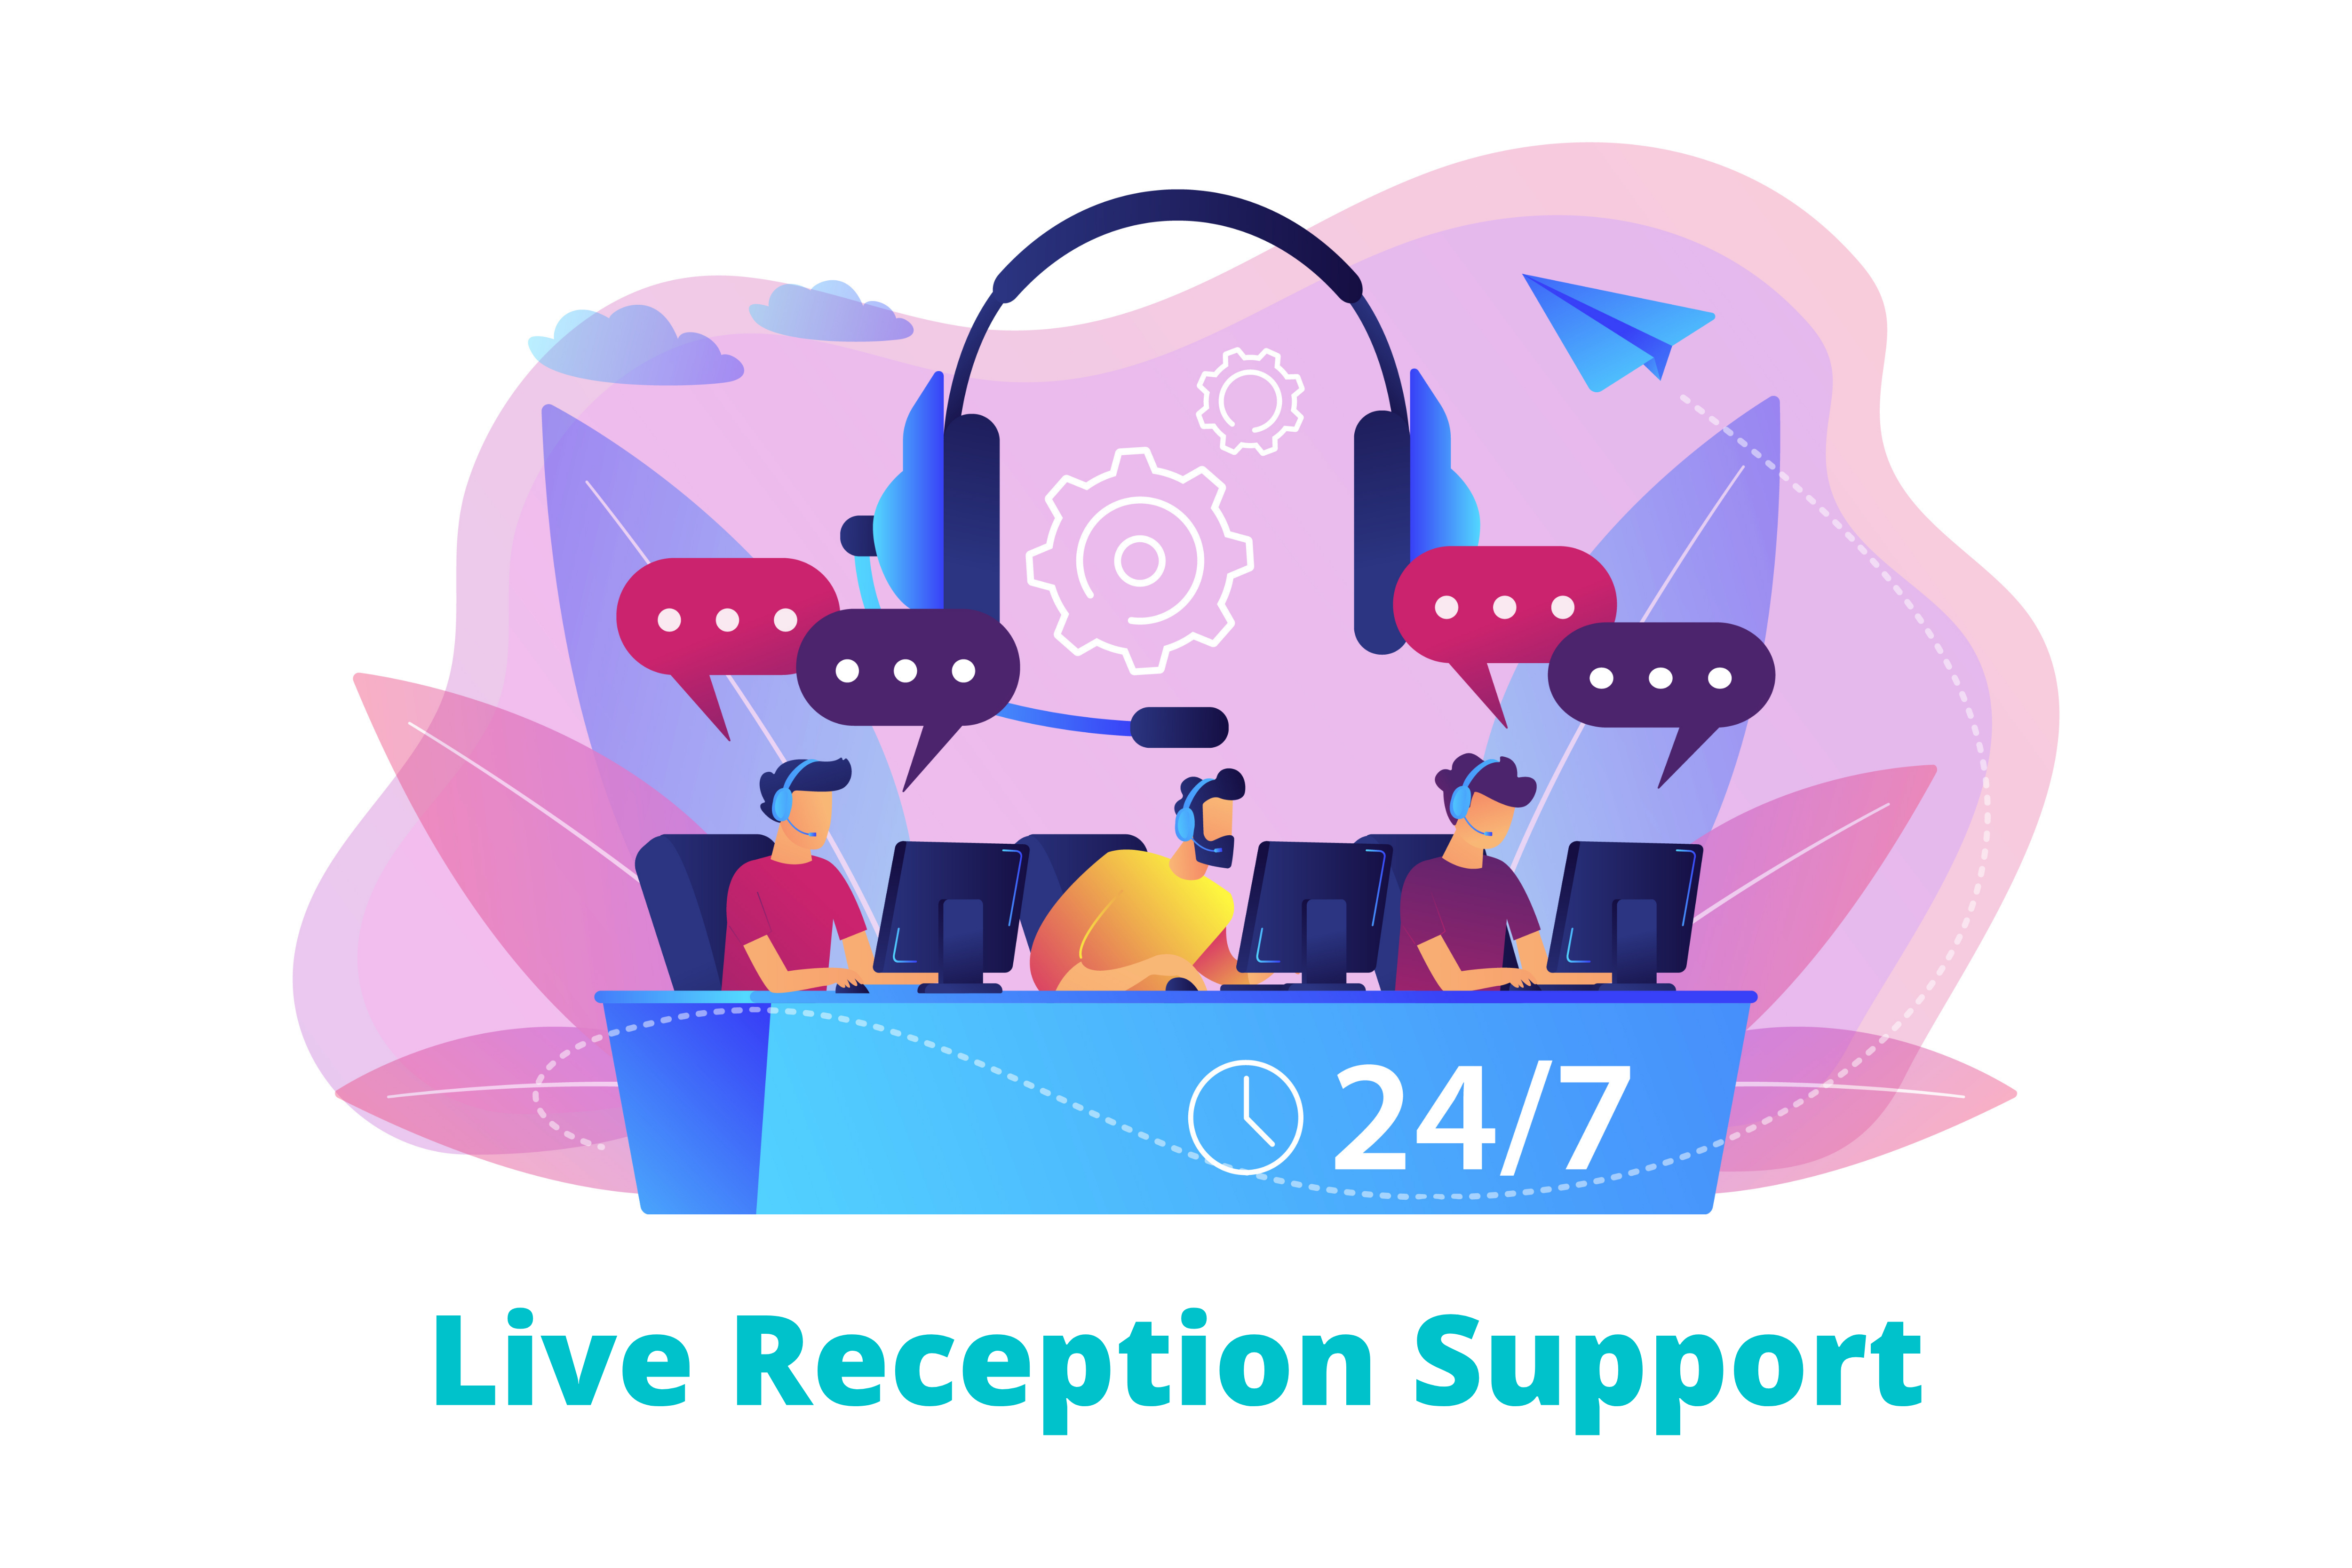 Live Reception Support